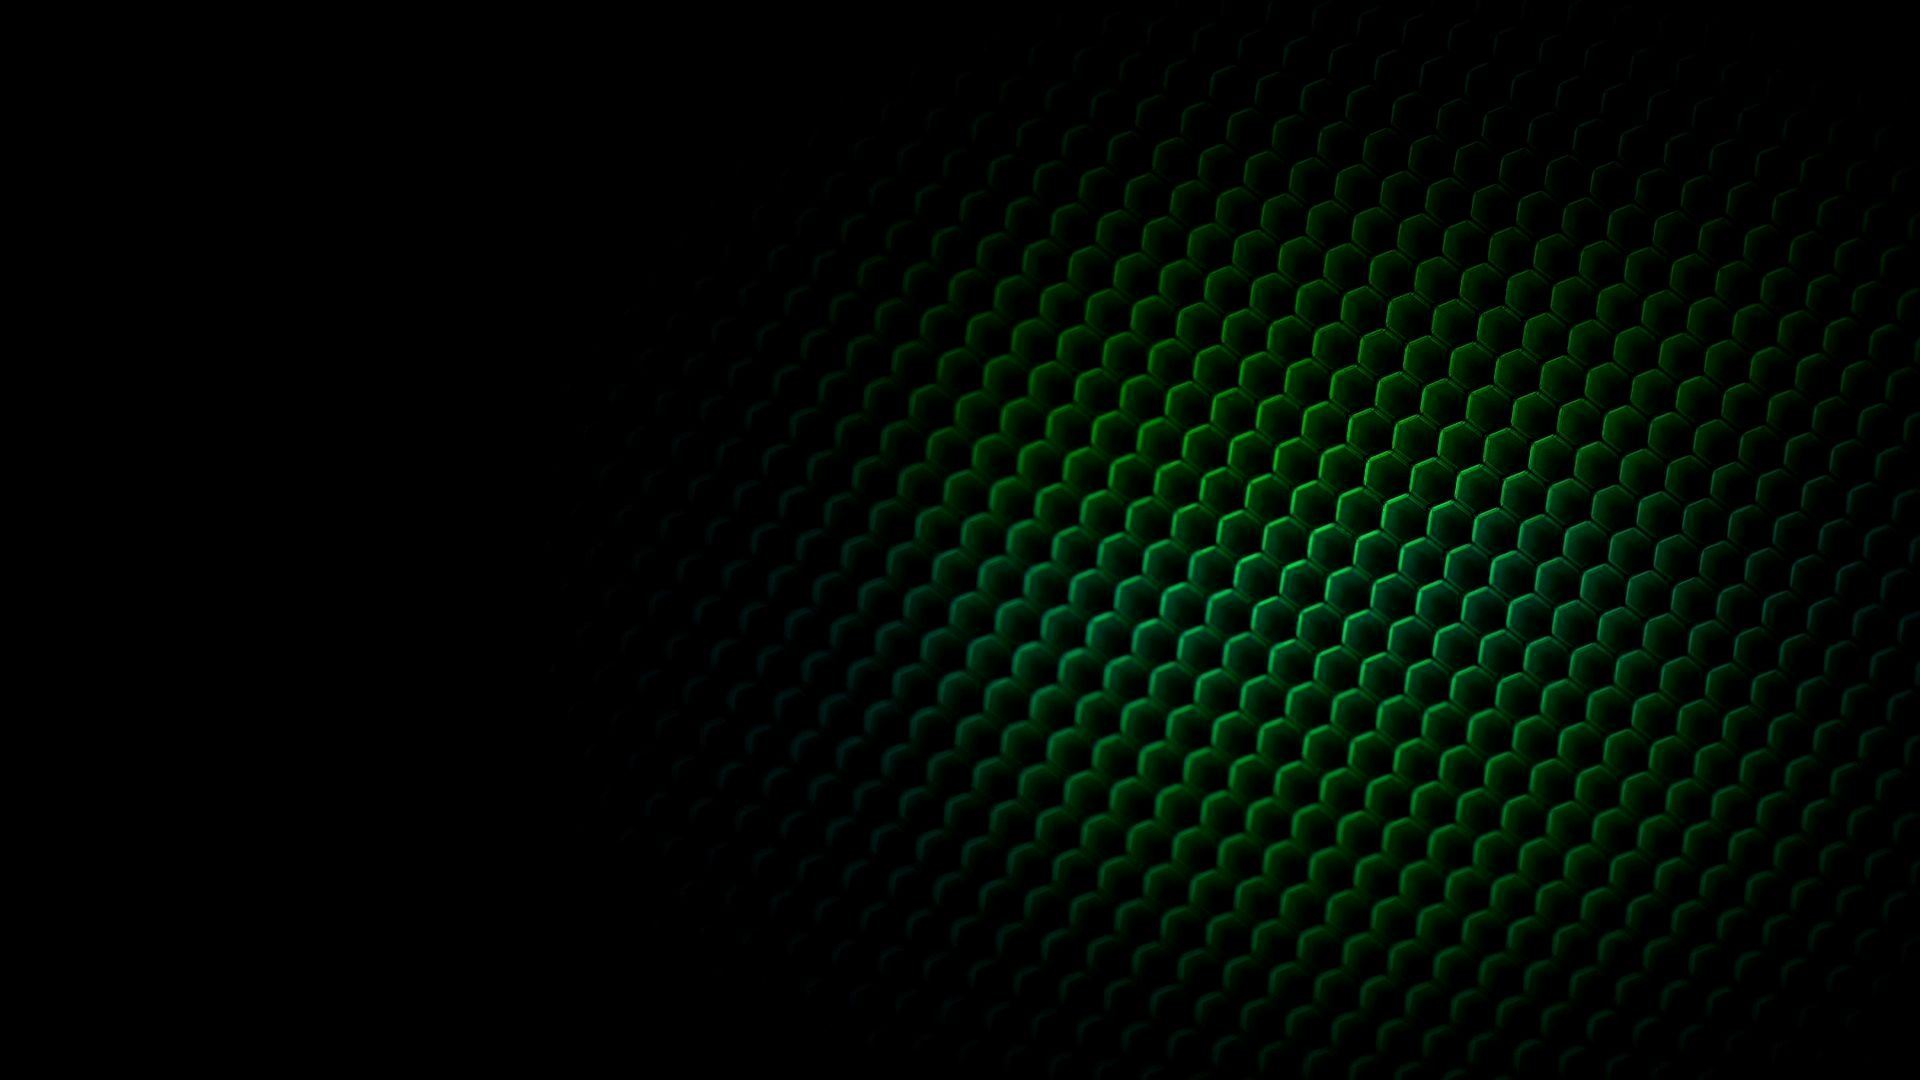 Dark Green 4k Wallpaper Ideas